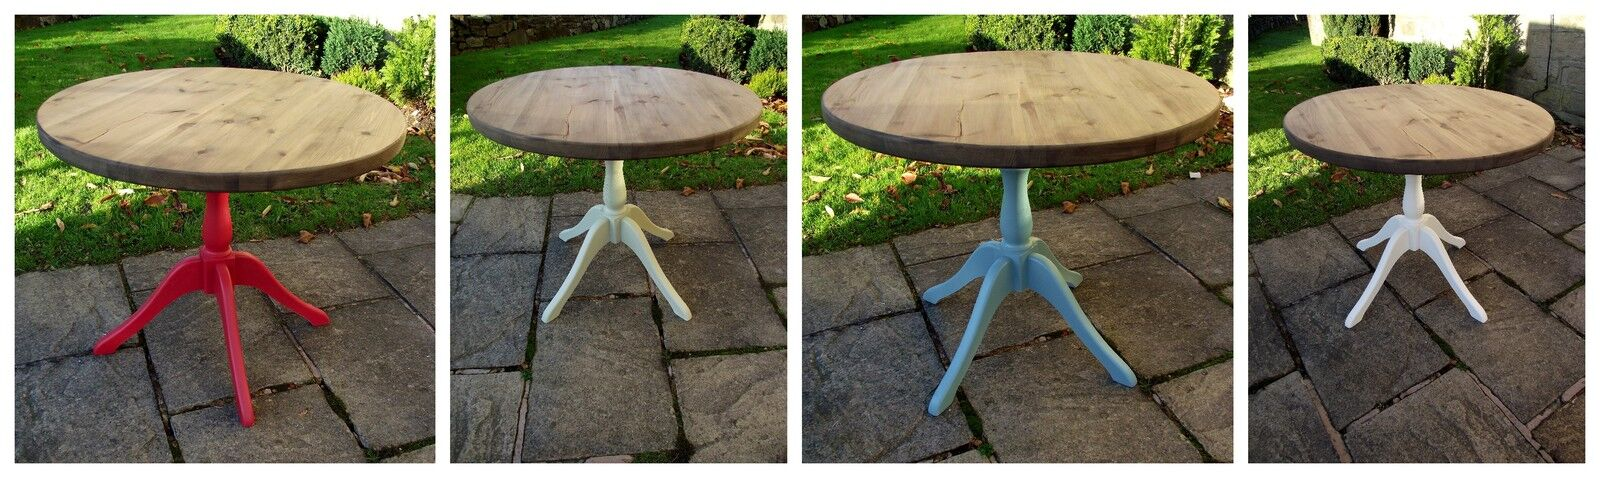 My Home Vintage Tables